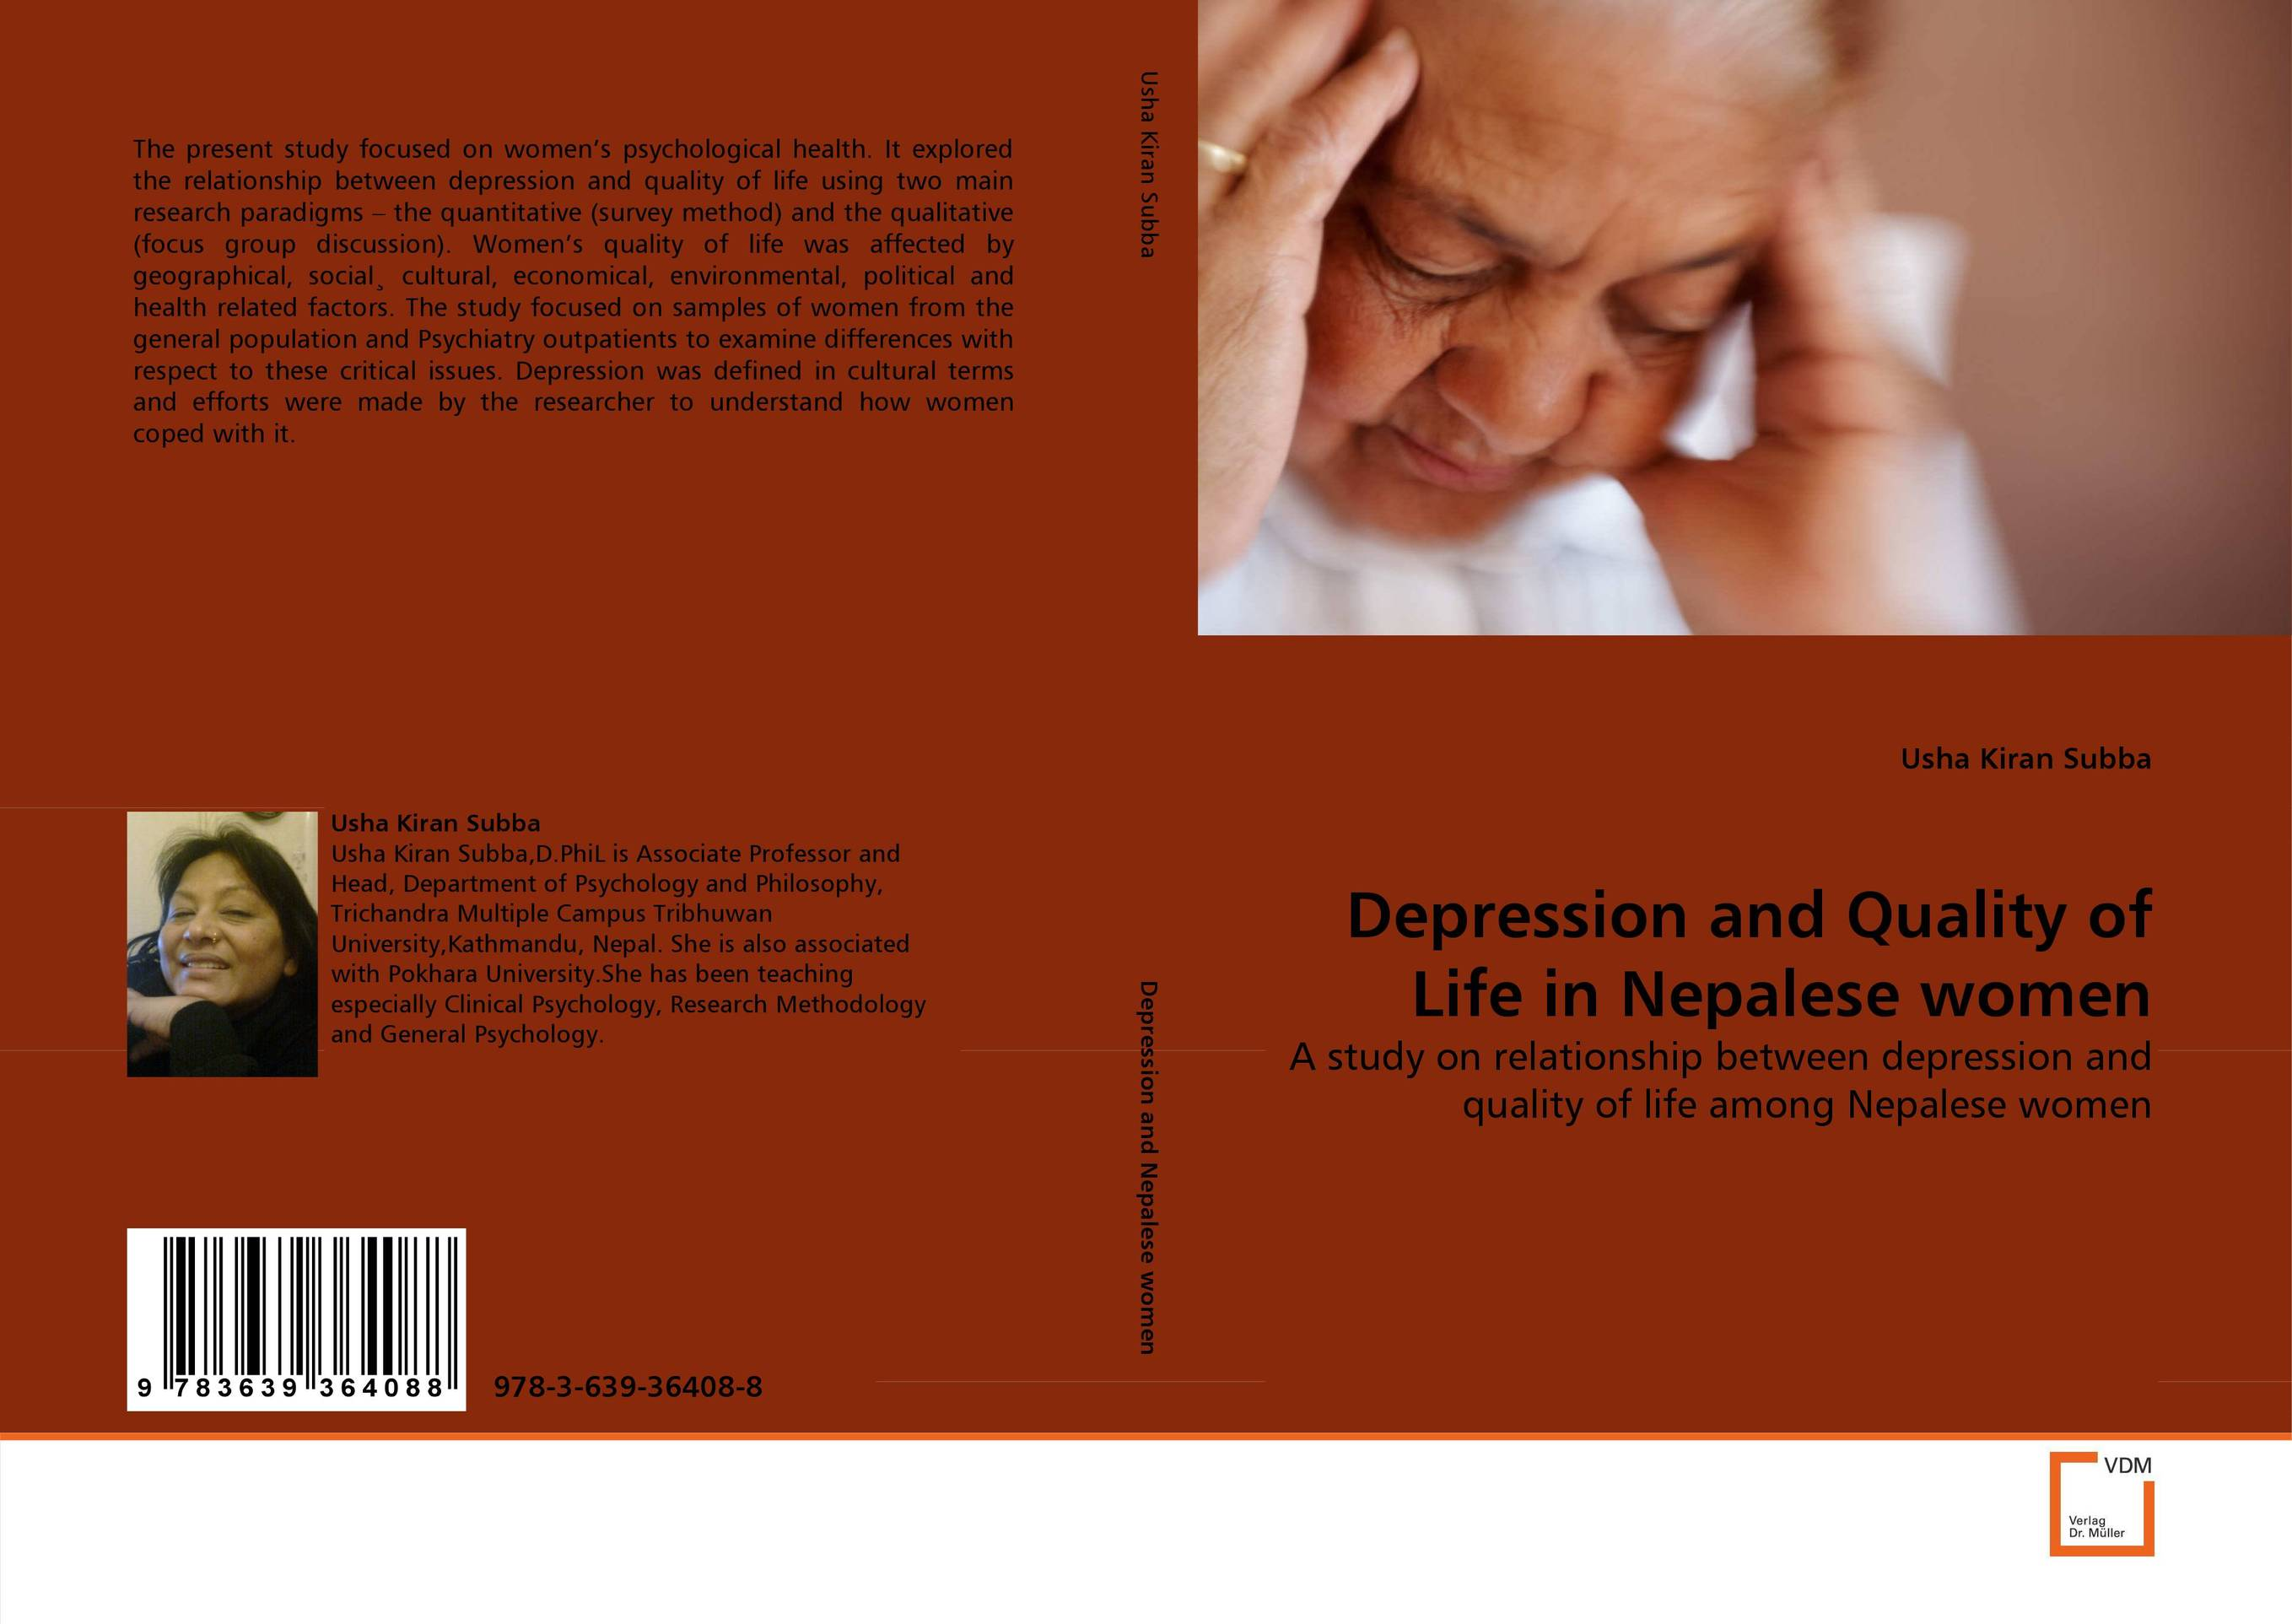 Depression and Quality of Life in Nepalese women